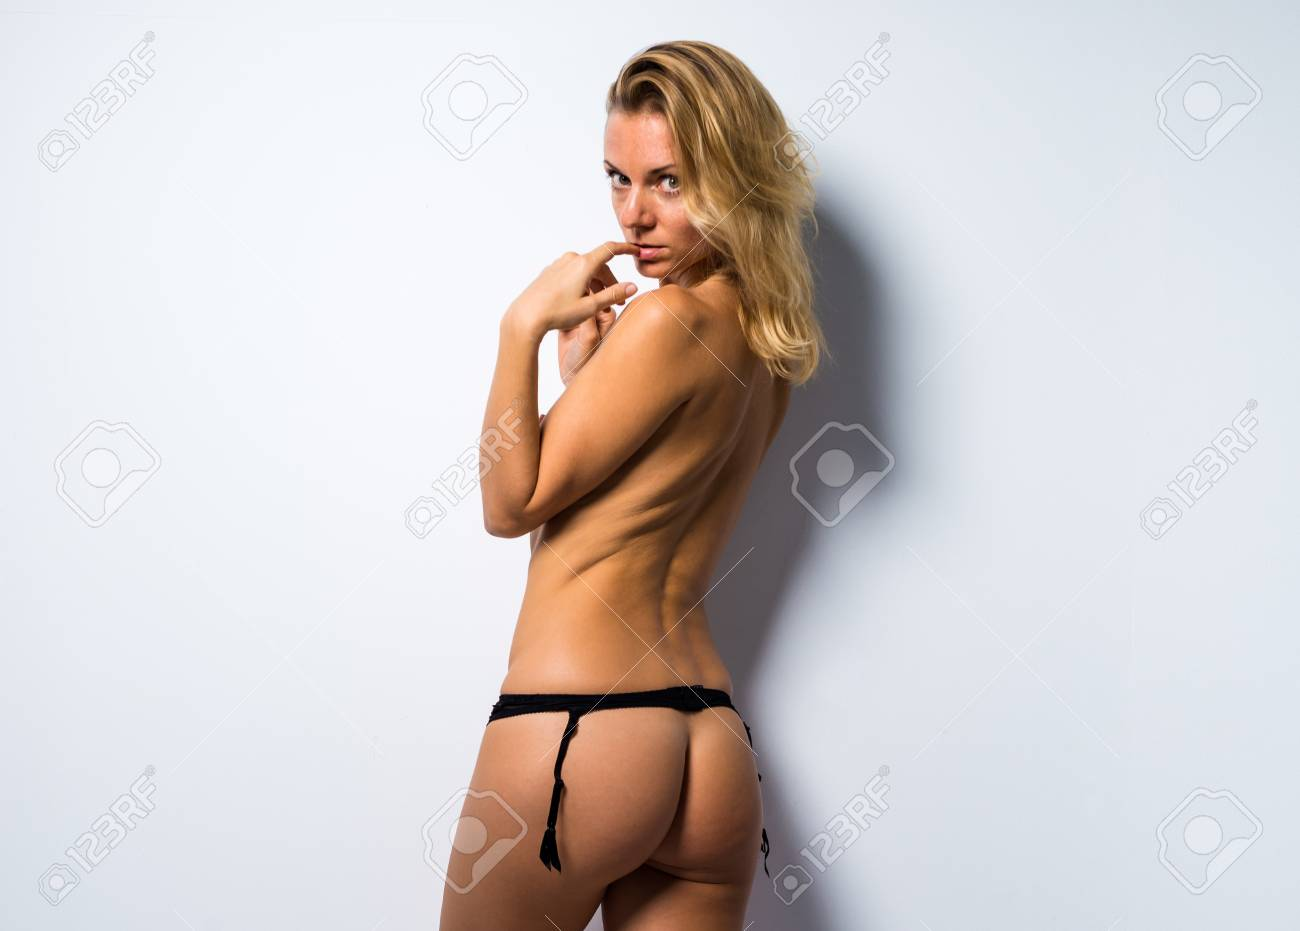 Sexy Naked Blonde Woman Stock Photo 69373261